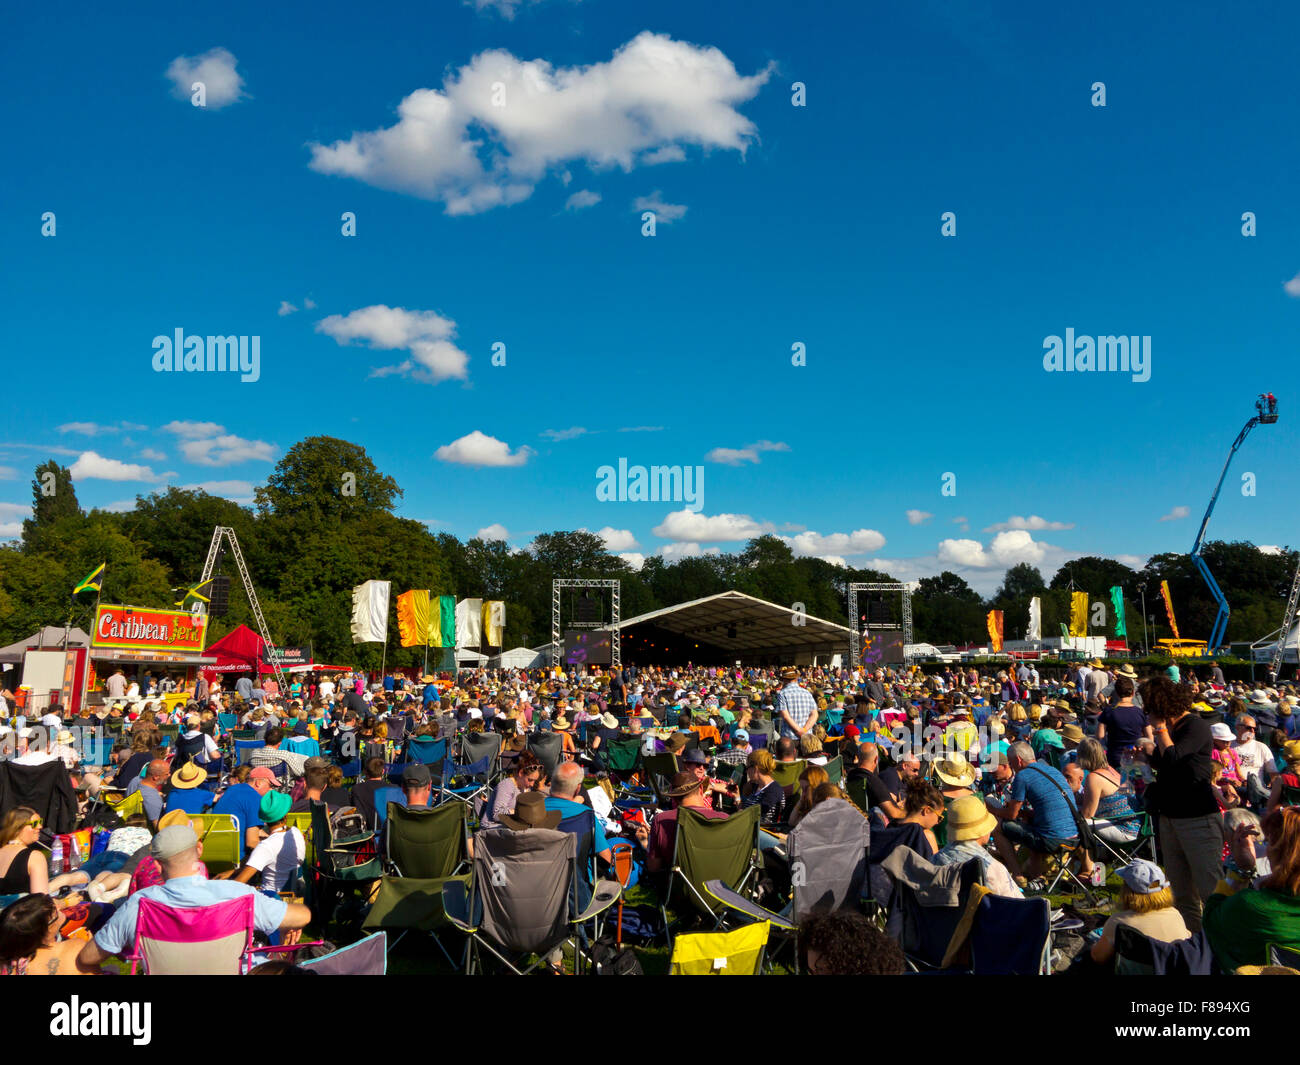 Crowd enjoying a performance at the Cambridge Folk Festival held every summer at Cherry Hinton in Cambridgeshire - Stock Image